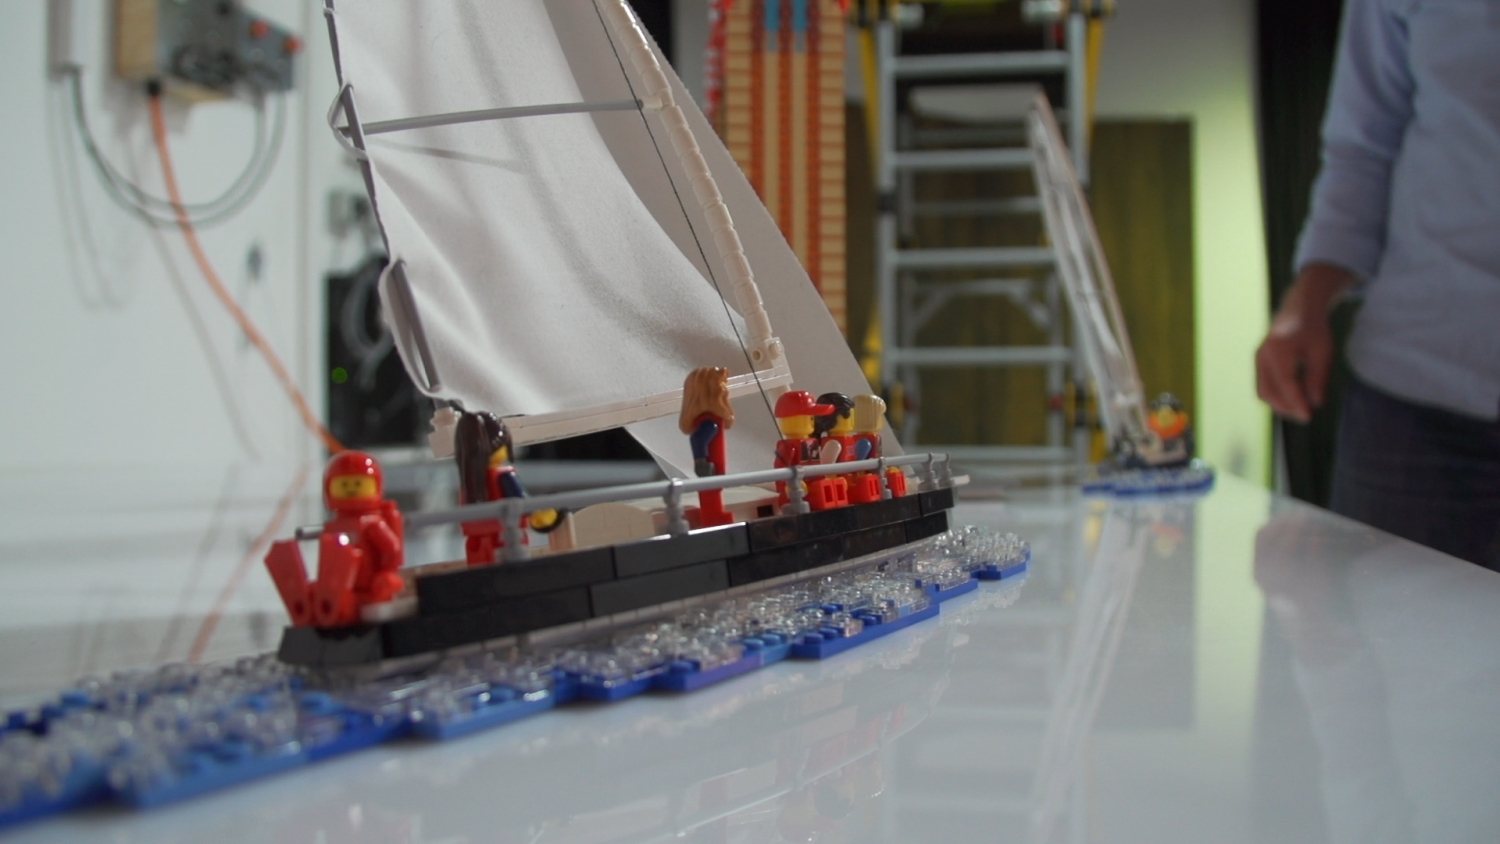 Colourful model of racing yacht under sail built in LEGO with minifig sailors on board